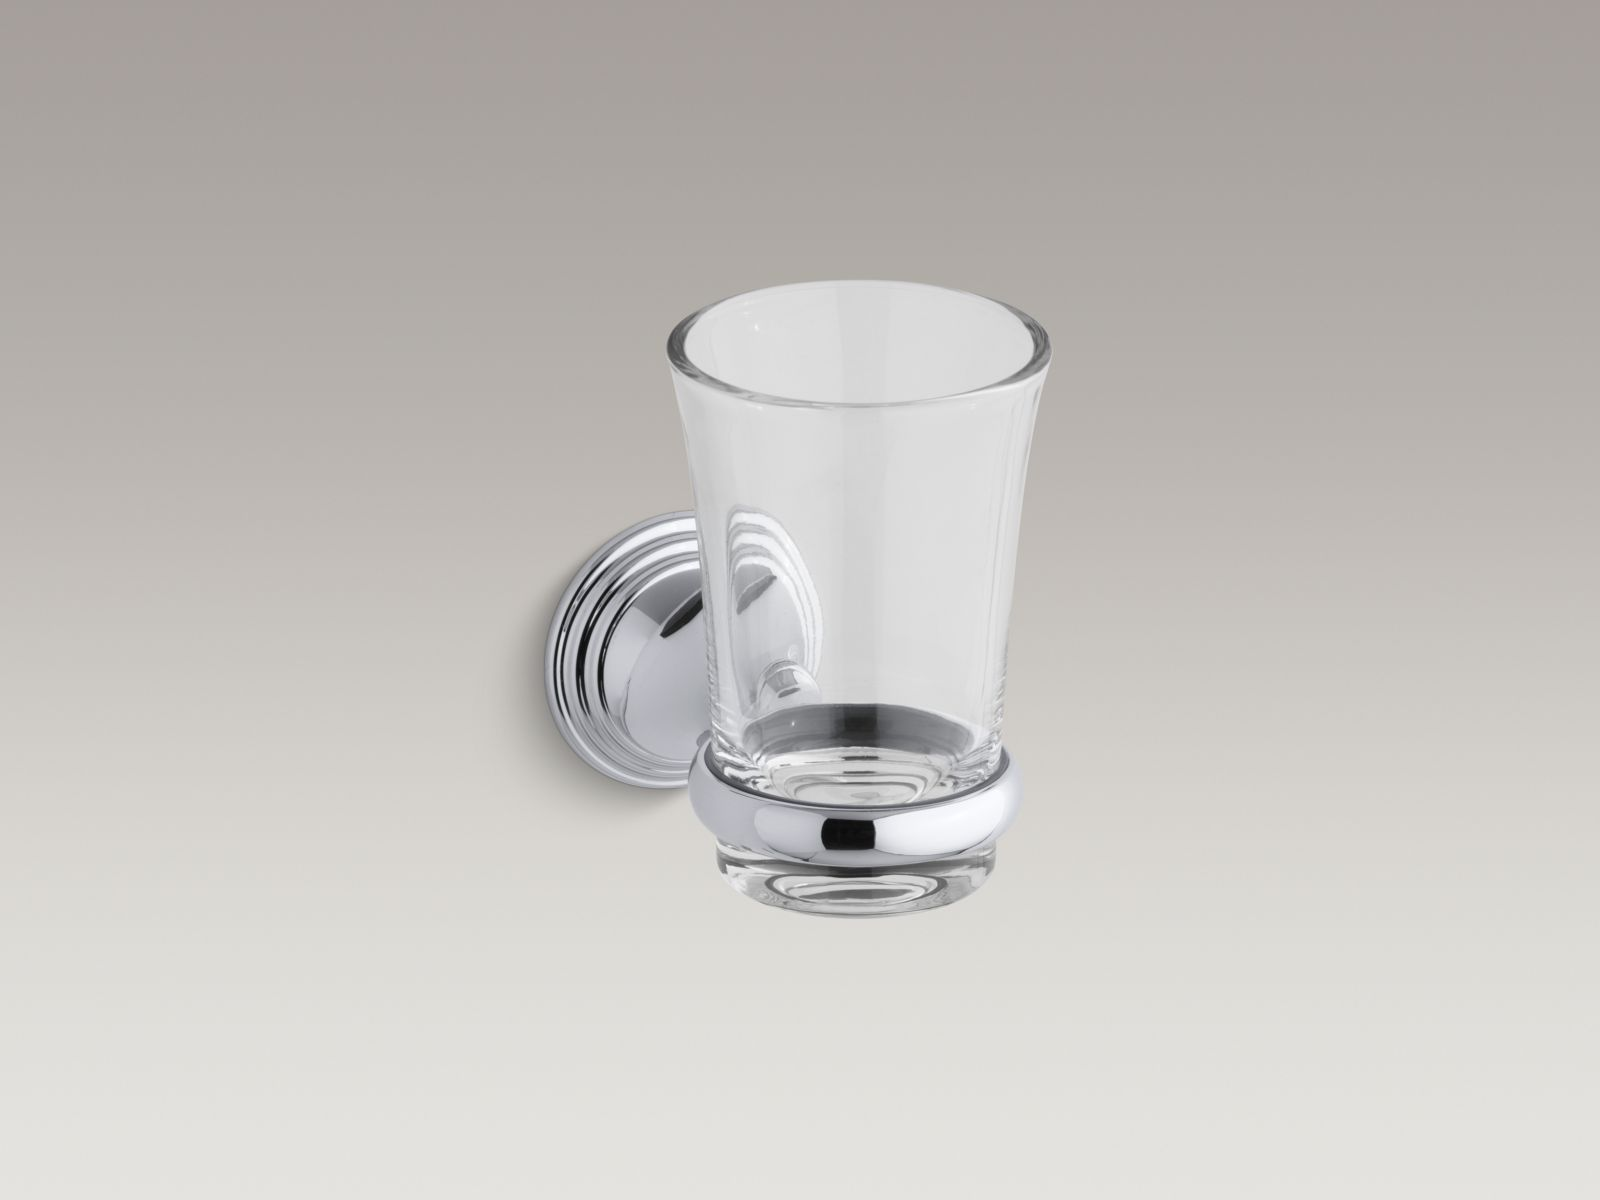 BuyPlumbingnet Product Kohler KCP Devonshire Tumbler And - Kohler devonshire bathroom collection